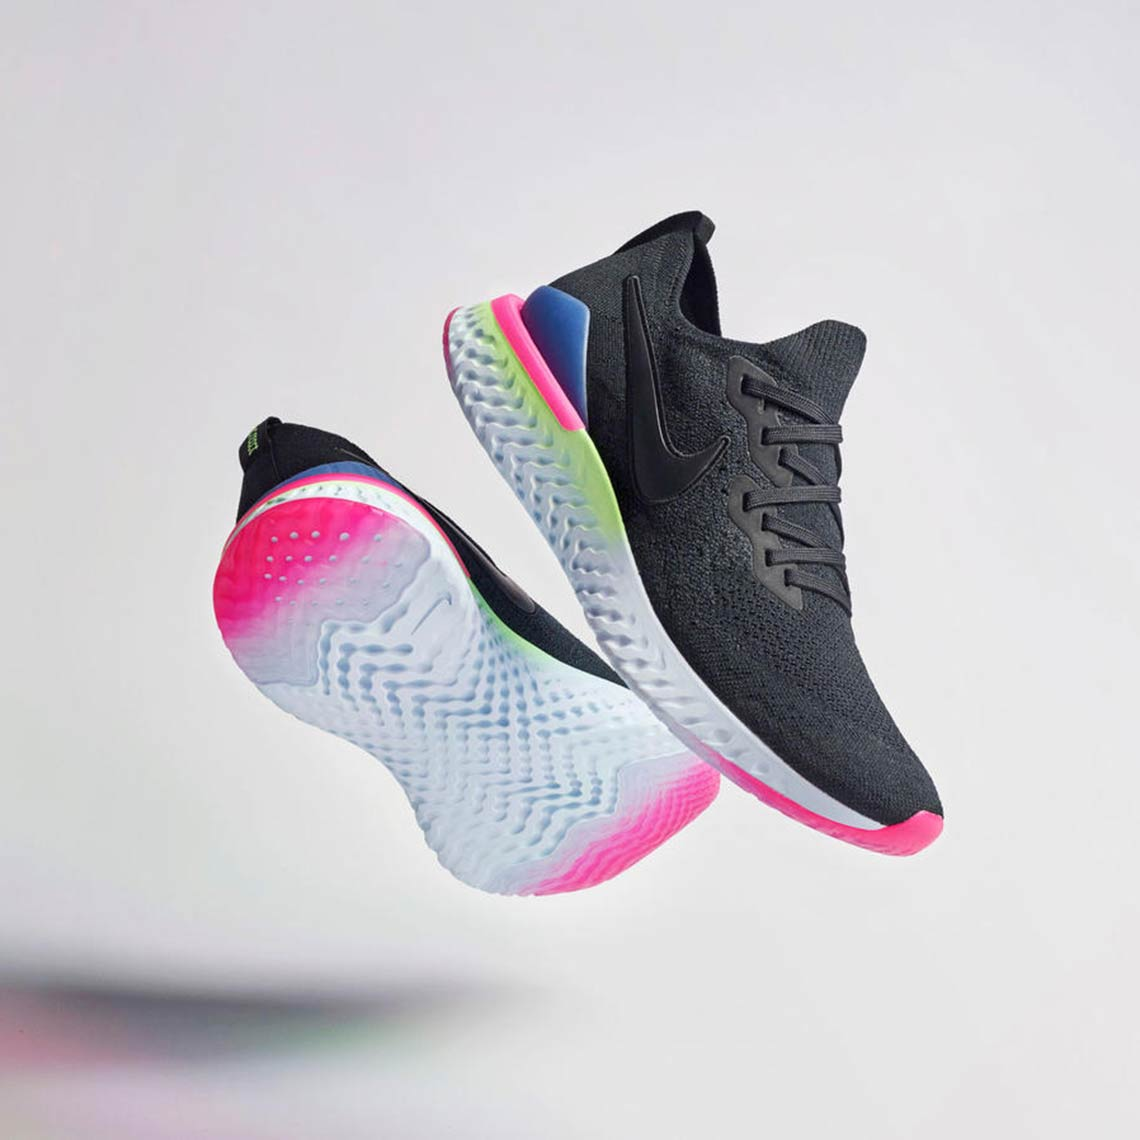 Nike Epic React Flyknit 2 Release Date Buying Guide | SneakerNews.com